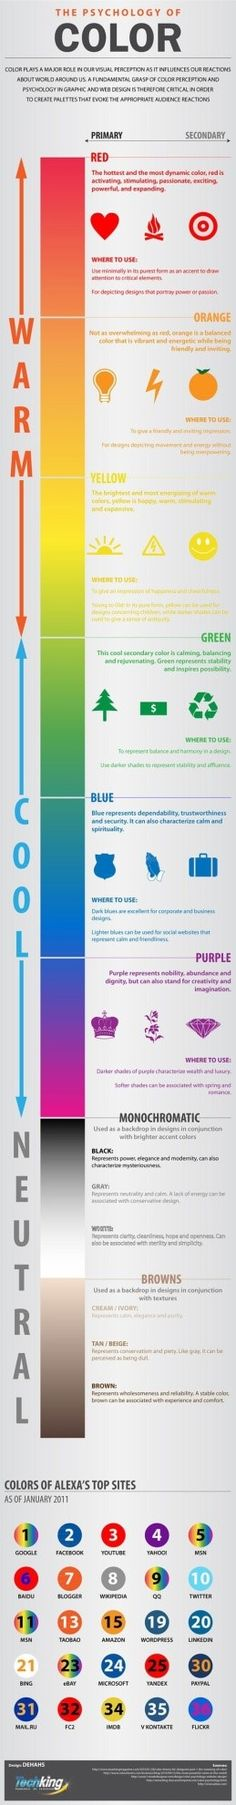 Do Colors Effect Restaurant Marketing & Branding? Handy chart and overview #restaurant #marketing #branding